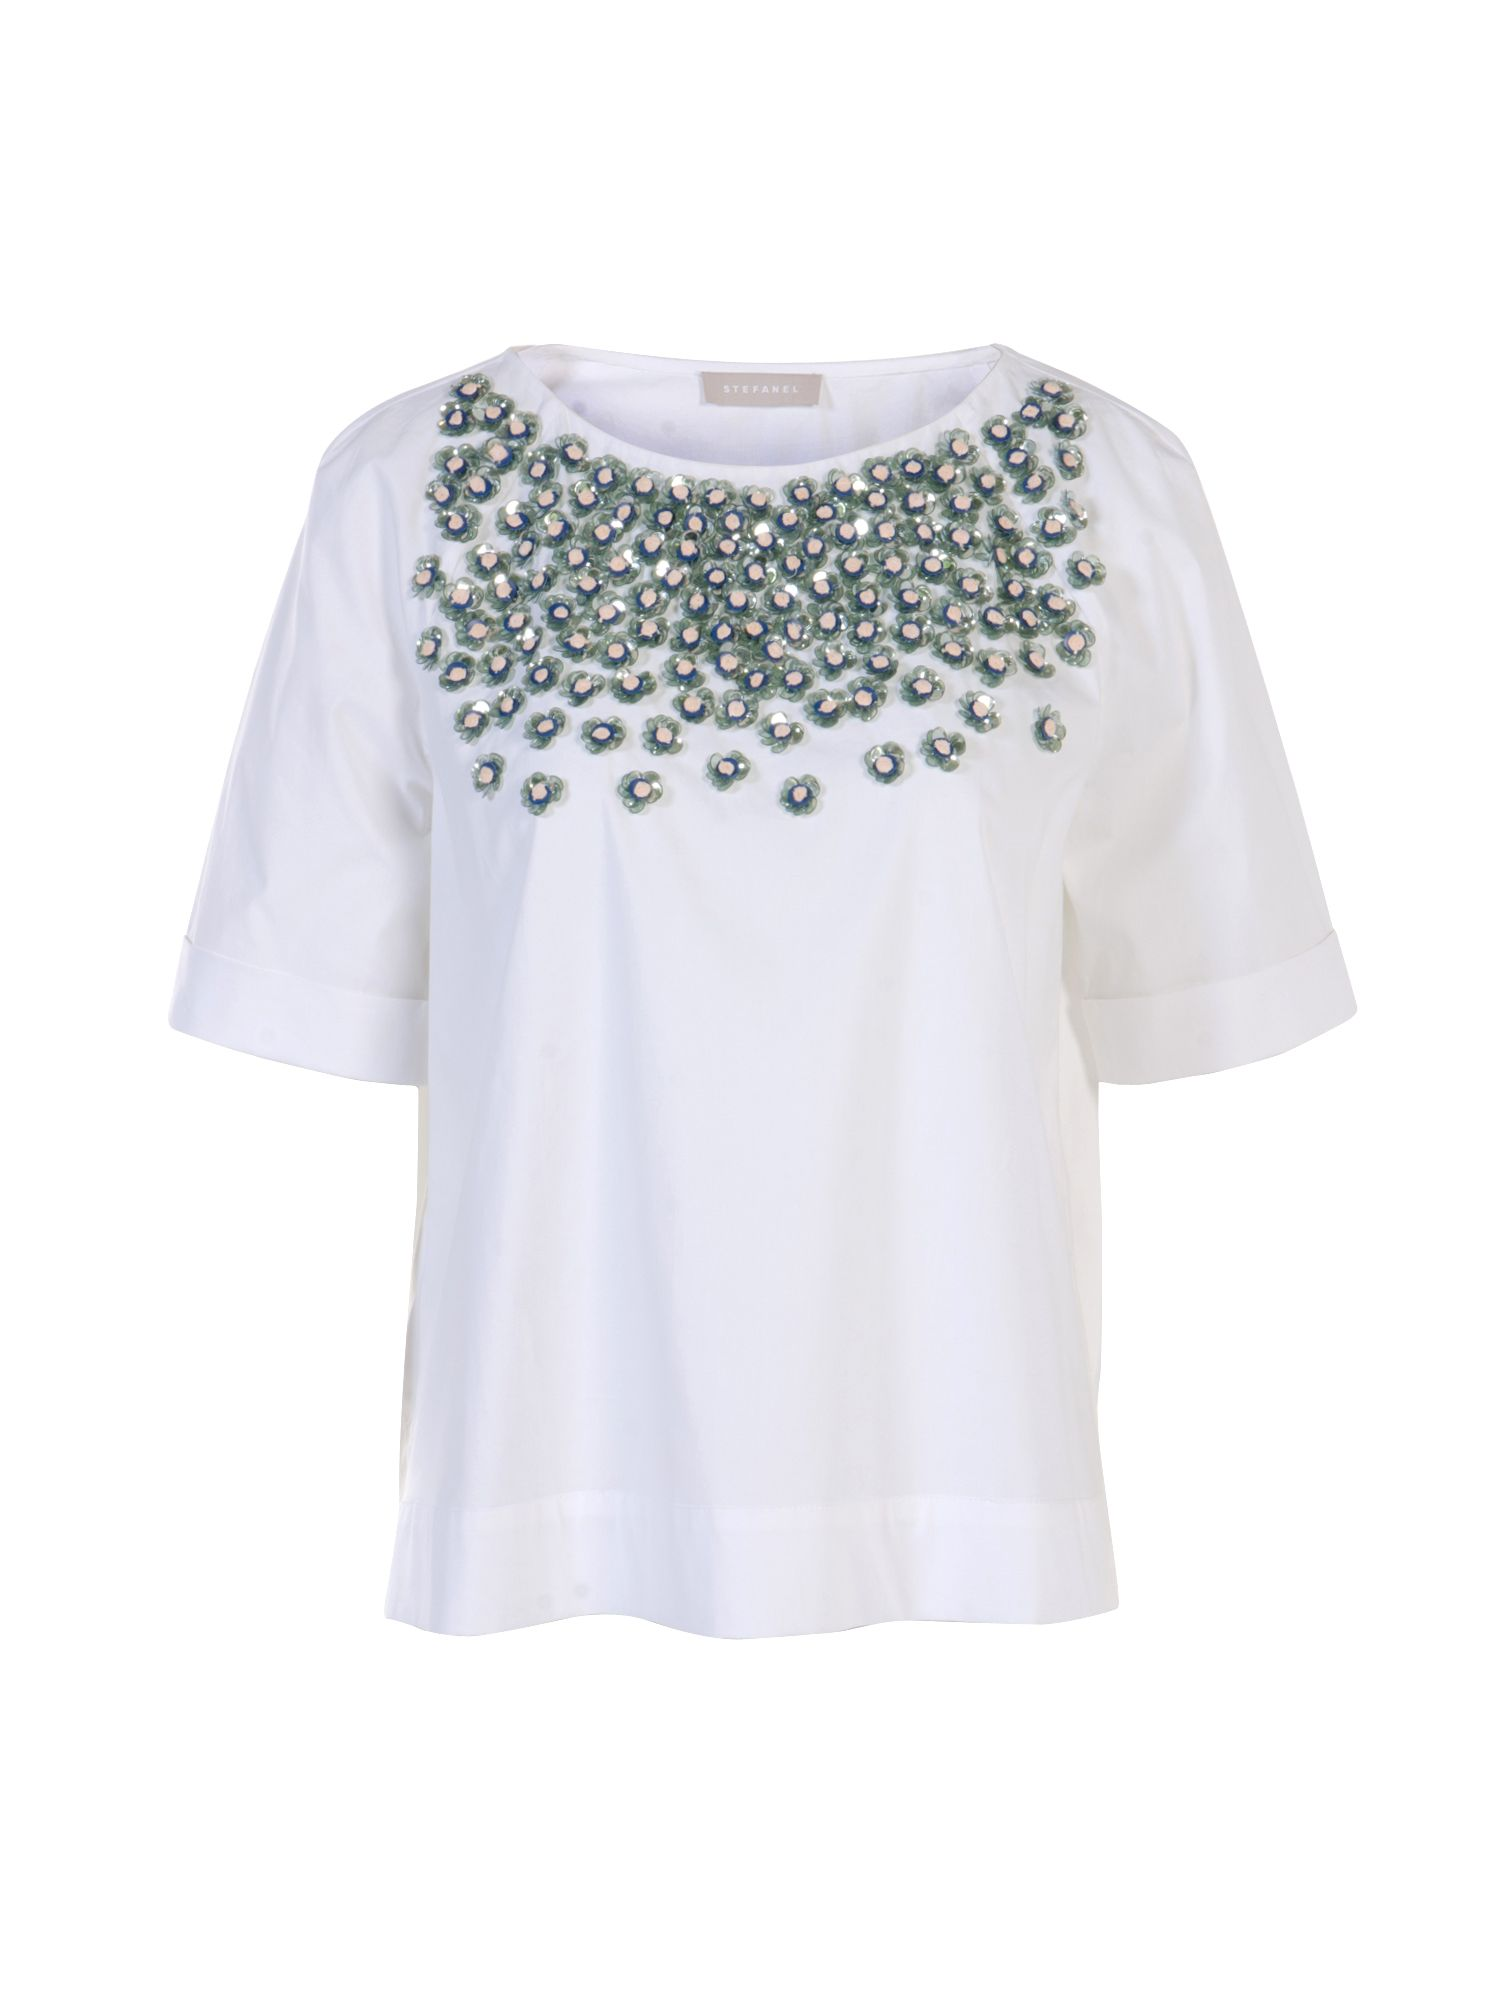 Stefanel Poplin Top With Beaded Embroidery, White